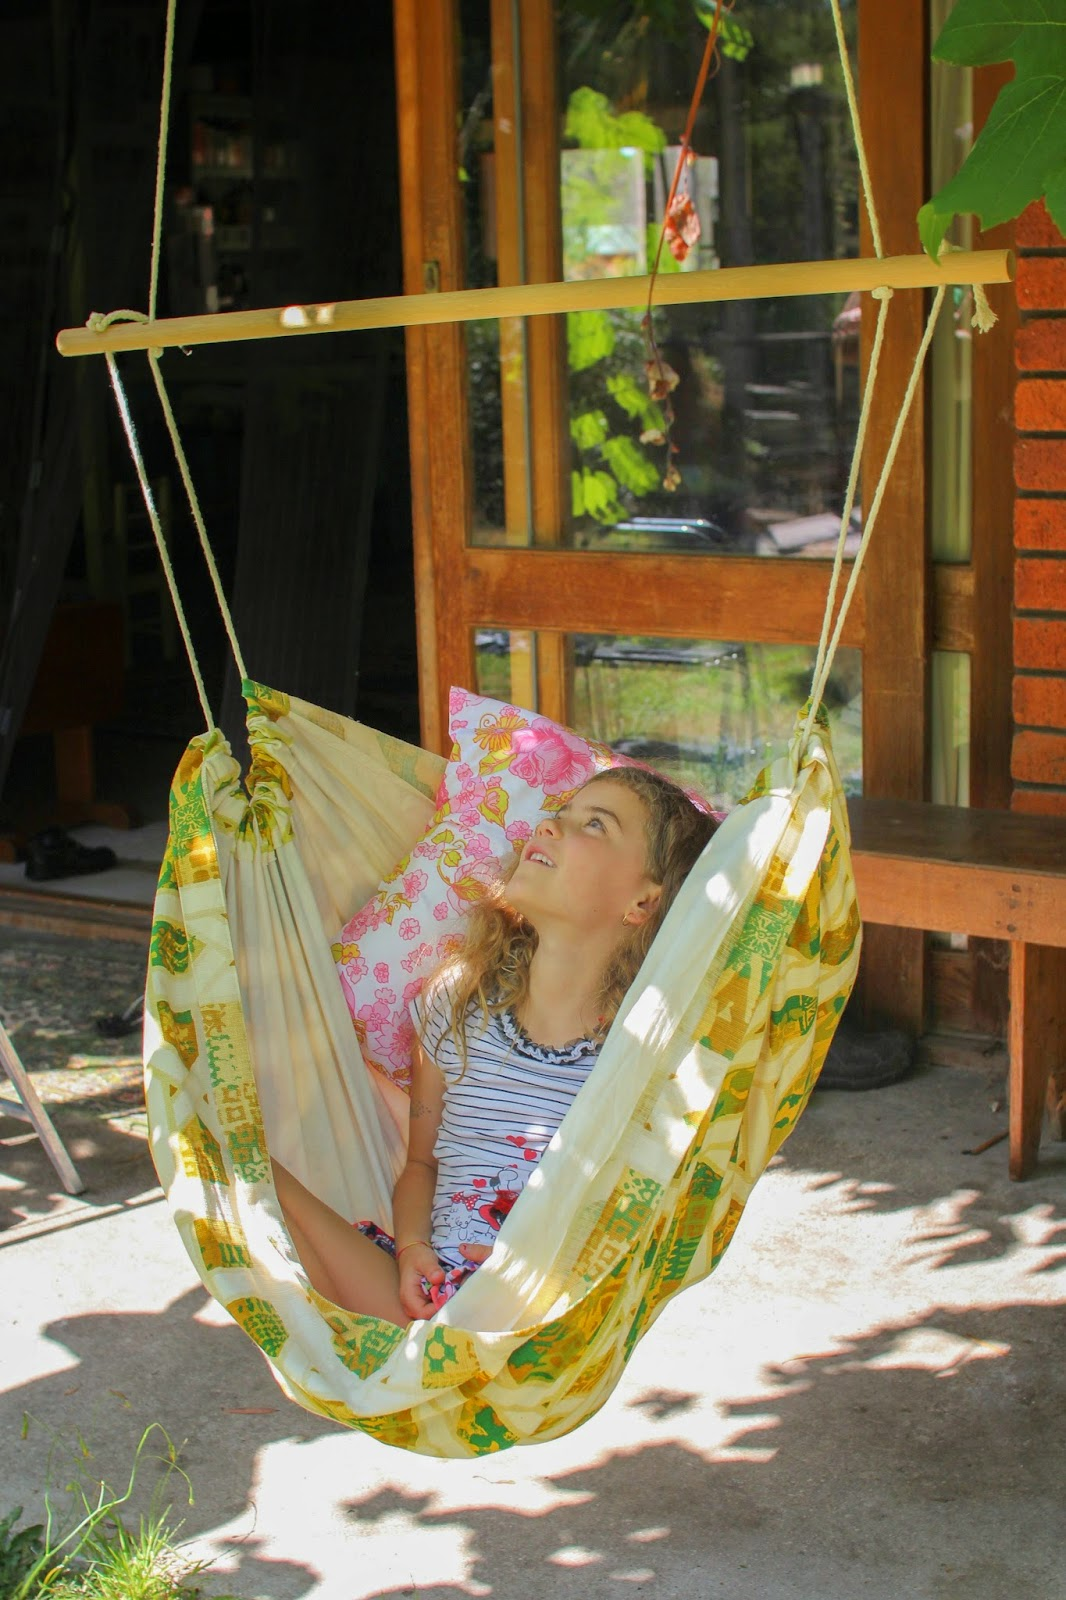 Kids Hanging Chair How To Make A Hammock Chair Swing